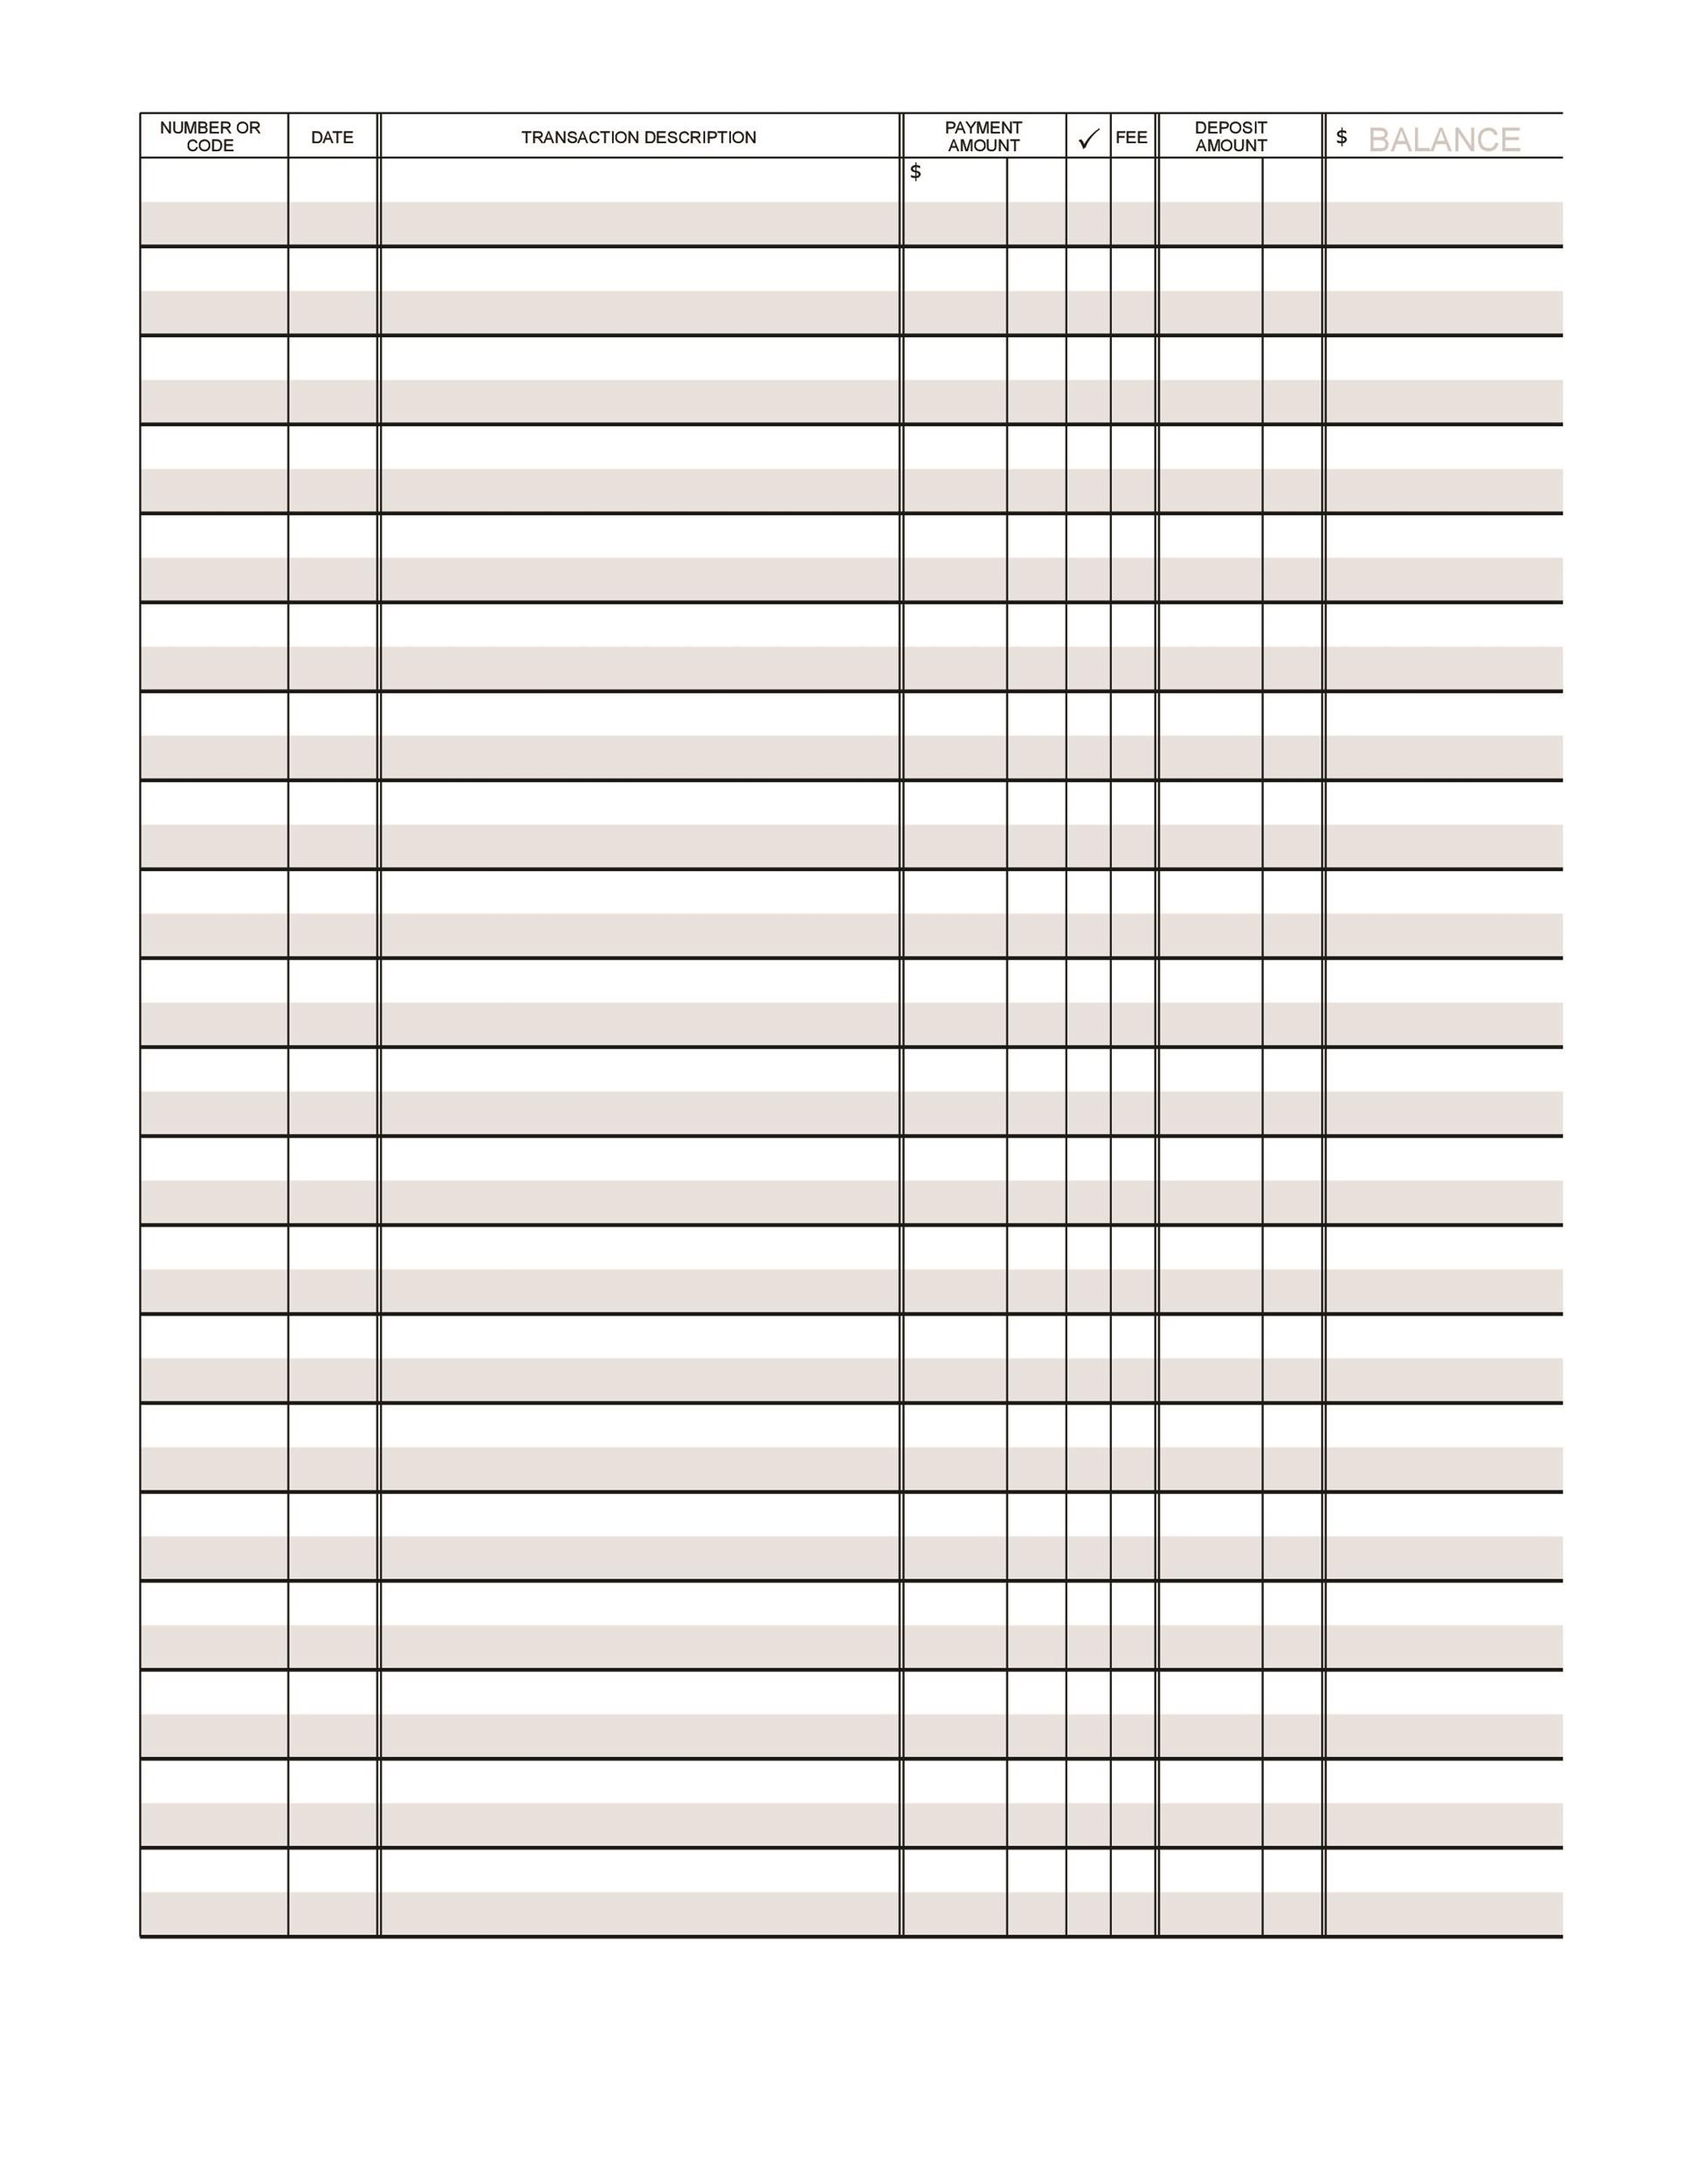 37 Checkbook Register Templates 100 Free Printable